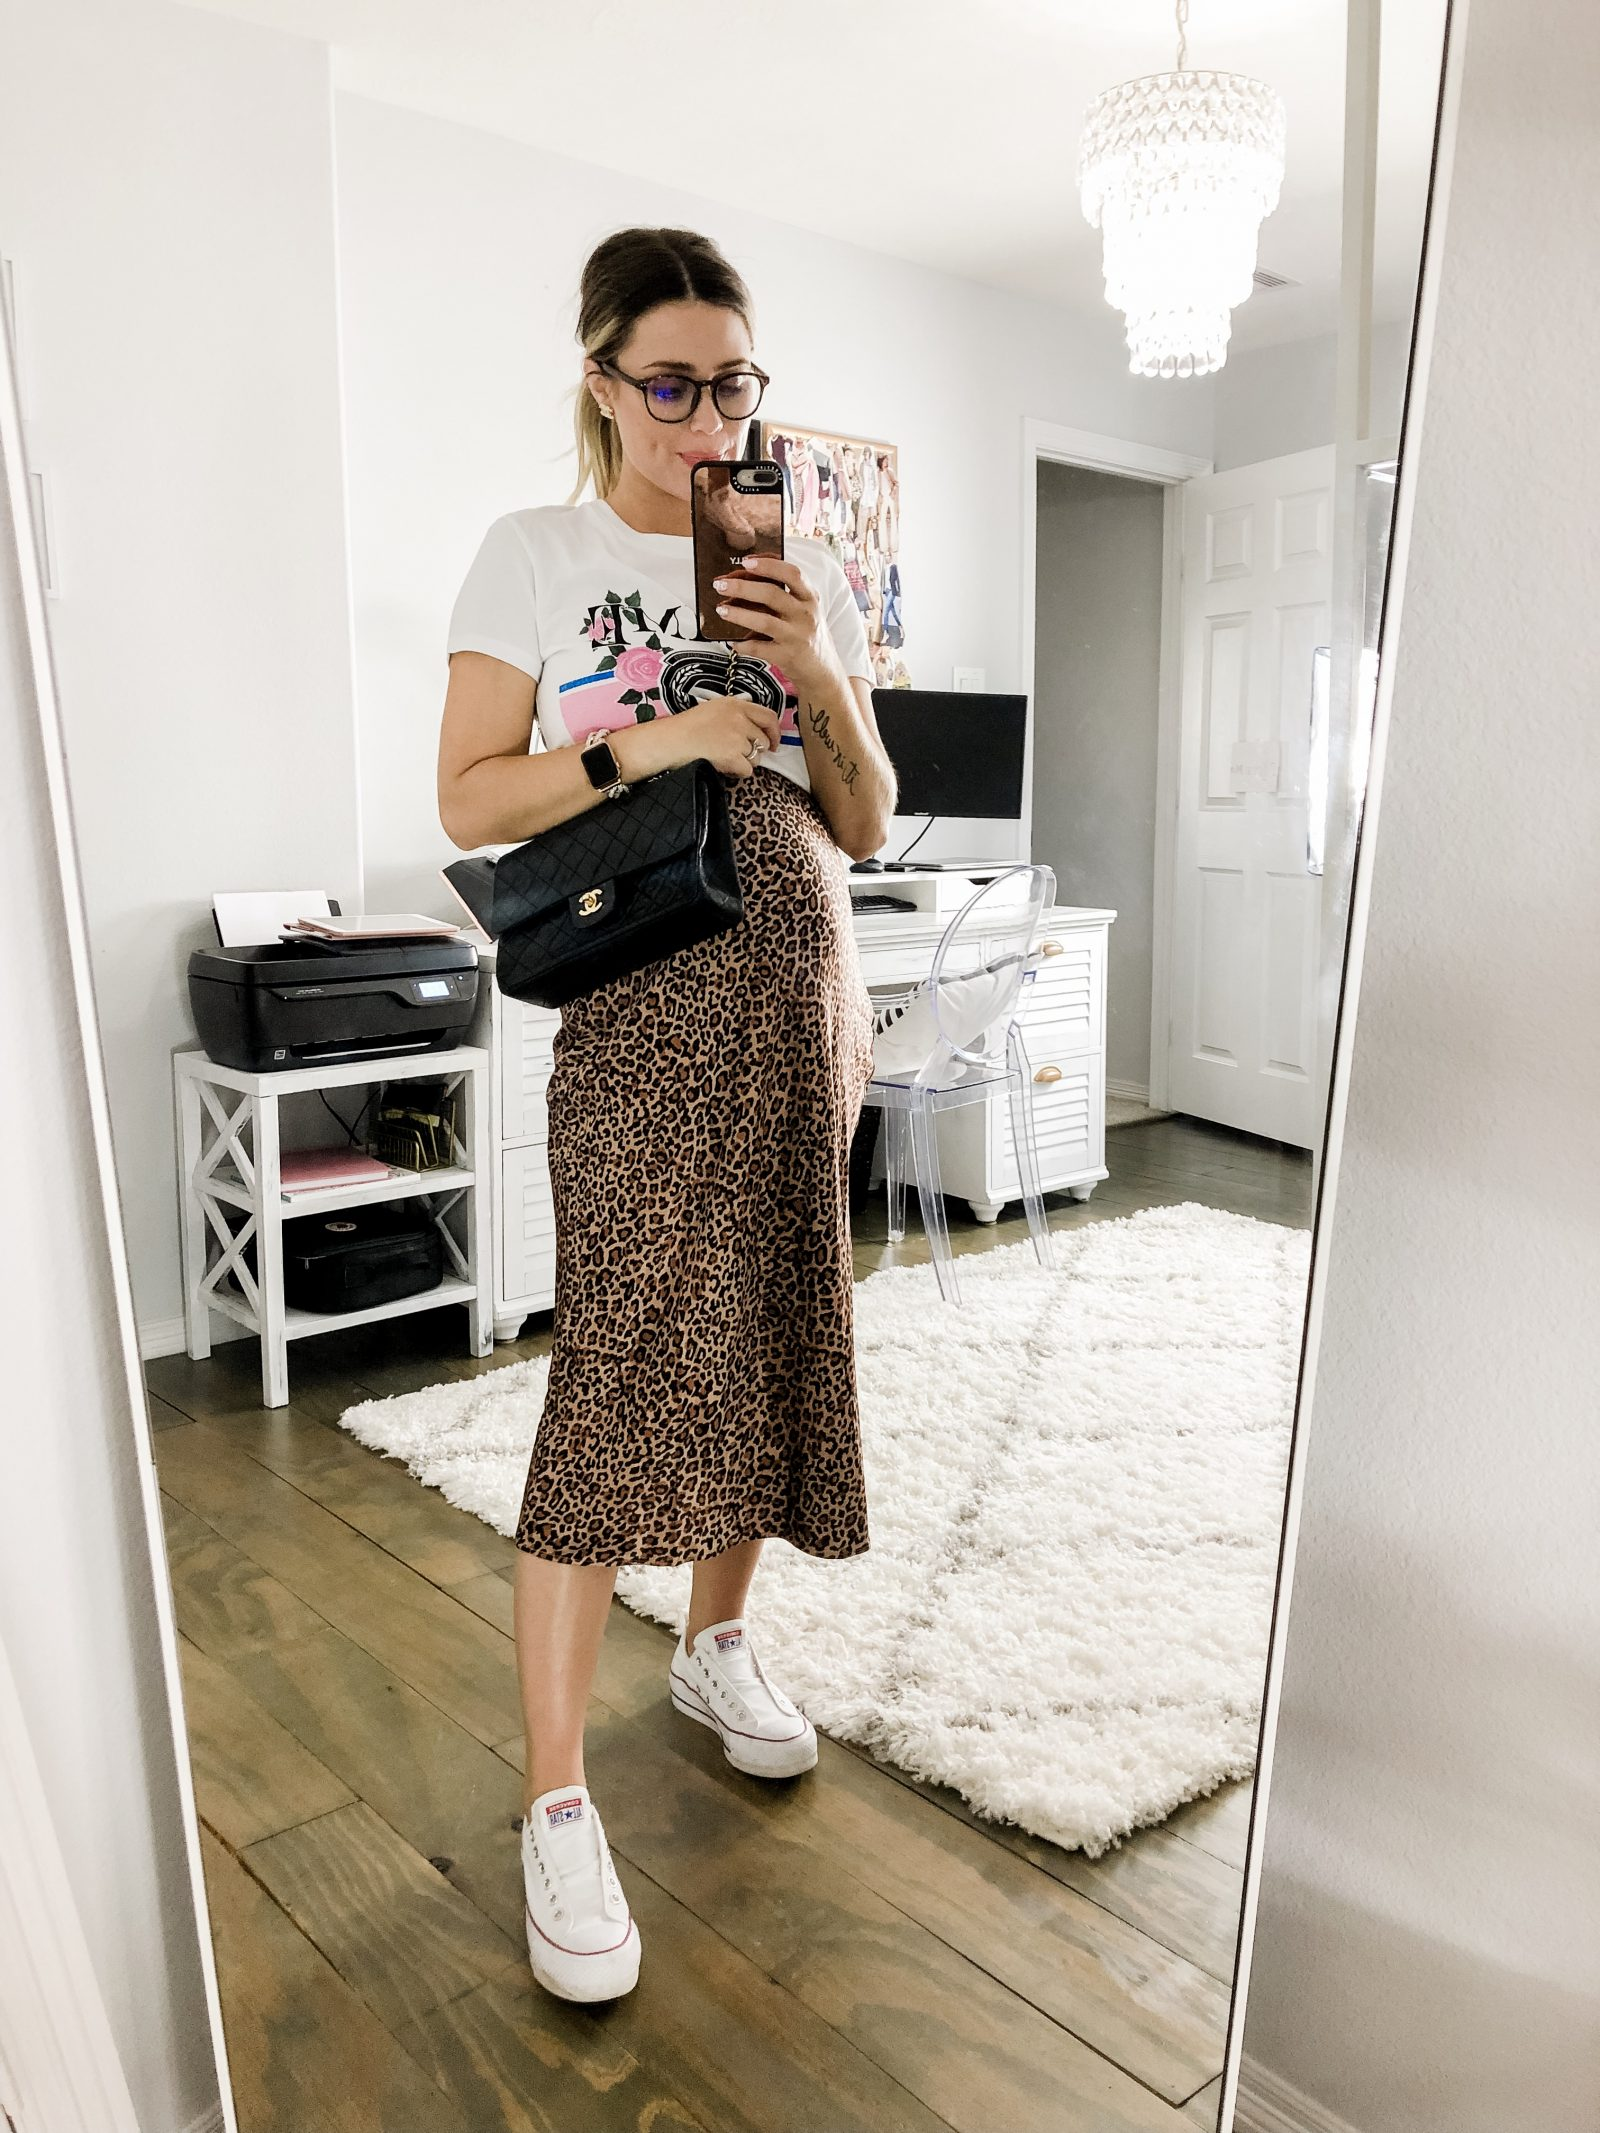 Houston fashion blogger Elly brown wears a bump friendly midi skirt with a graphic tee and converse sneakers